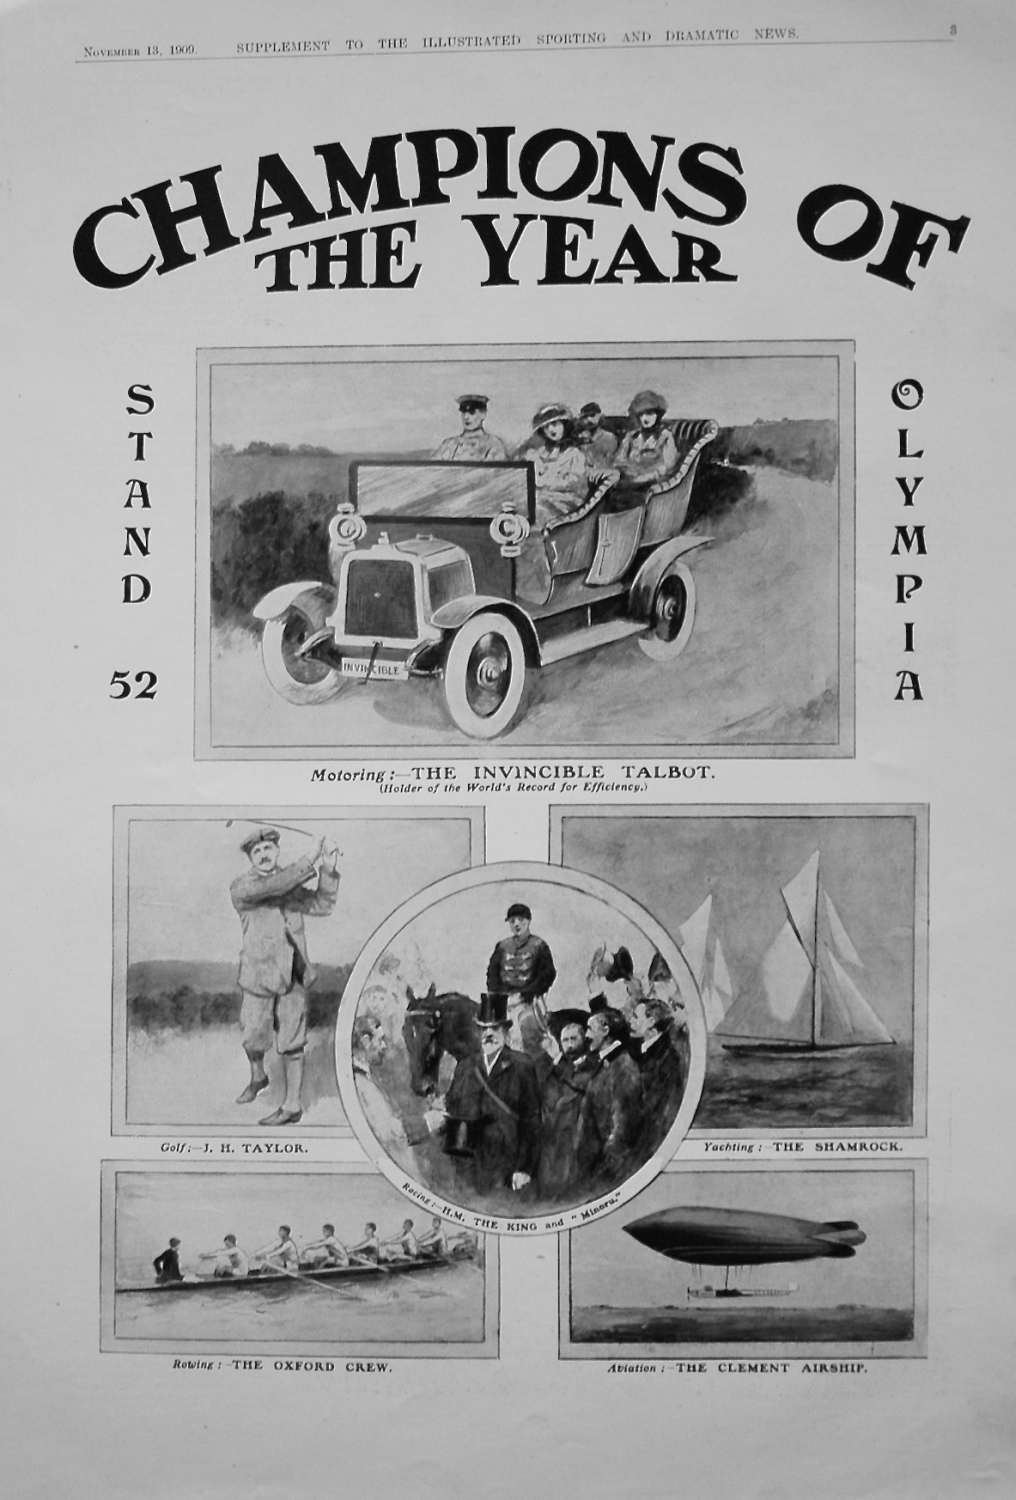 Champions of the Year. 1909